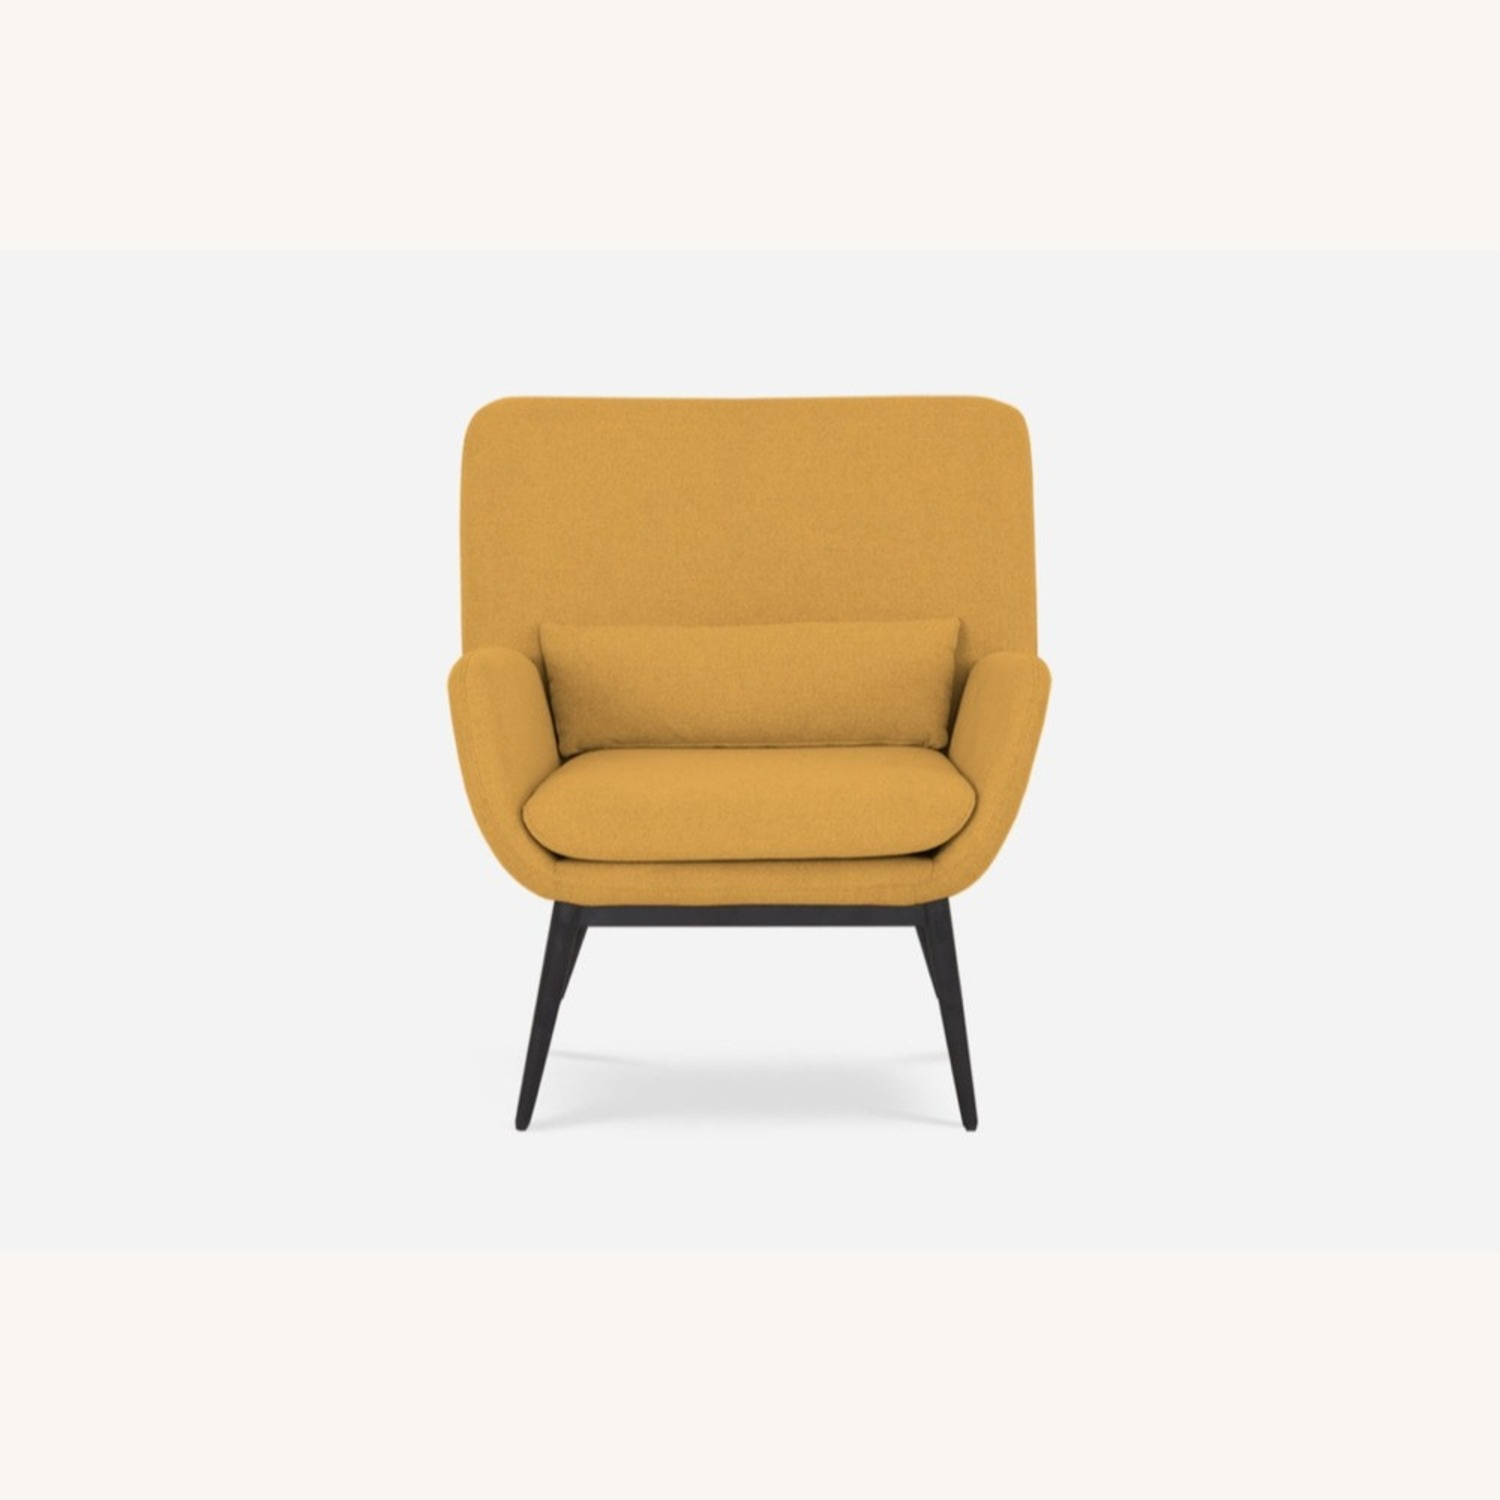 Castlery Cammy Armchair, Canary Yellow - image-3